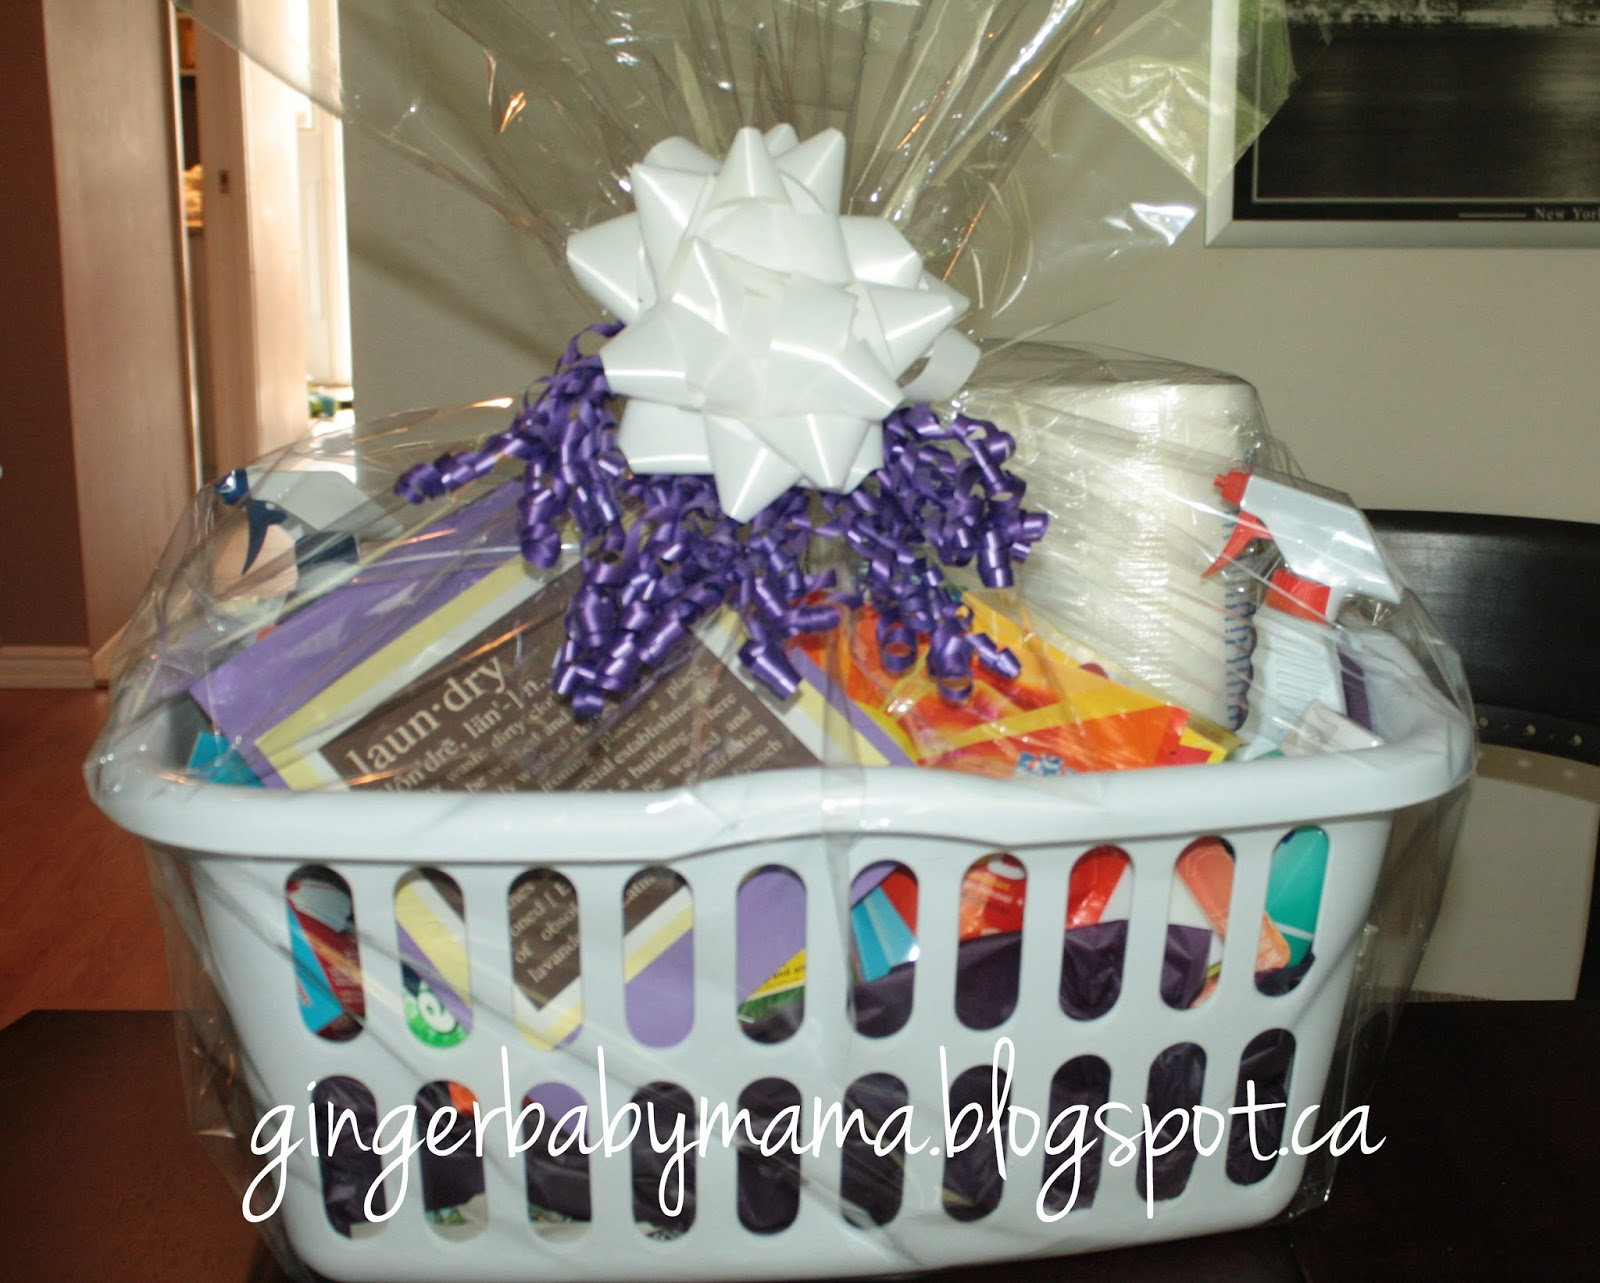 Baby Shower Gift Ideas Practical : Gingerbabymama fun practical bridal shower gift